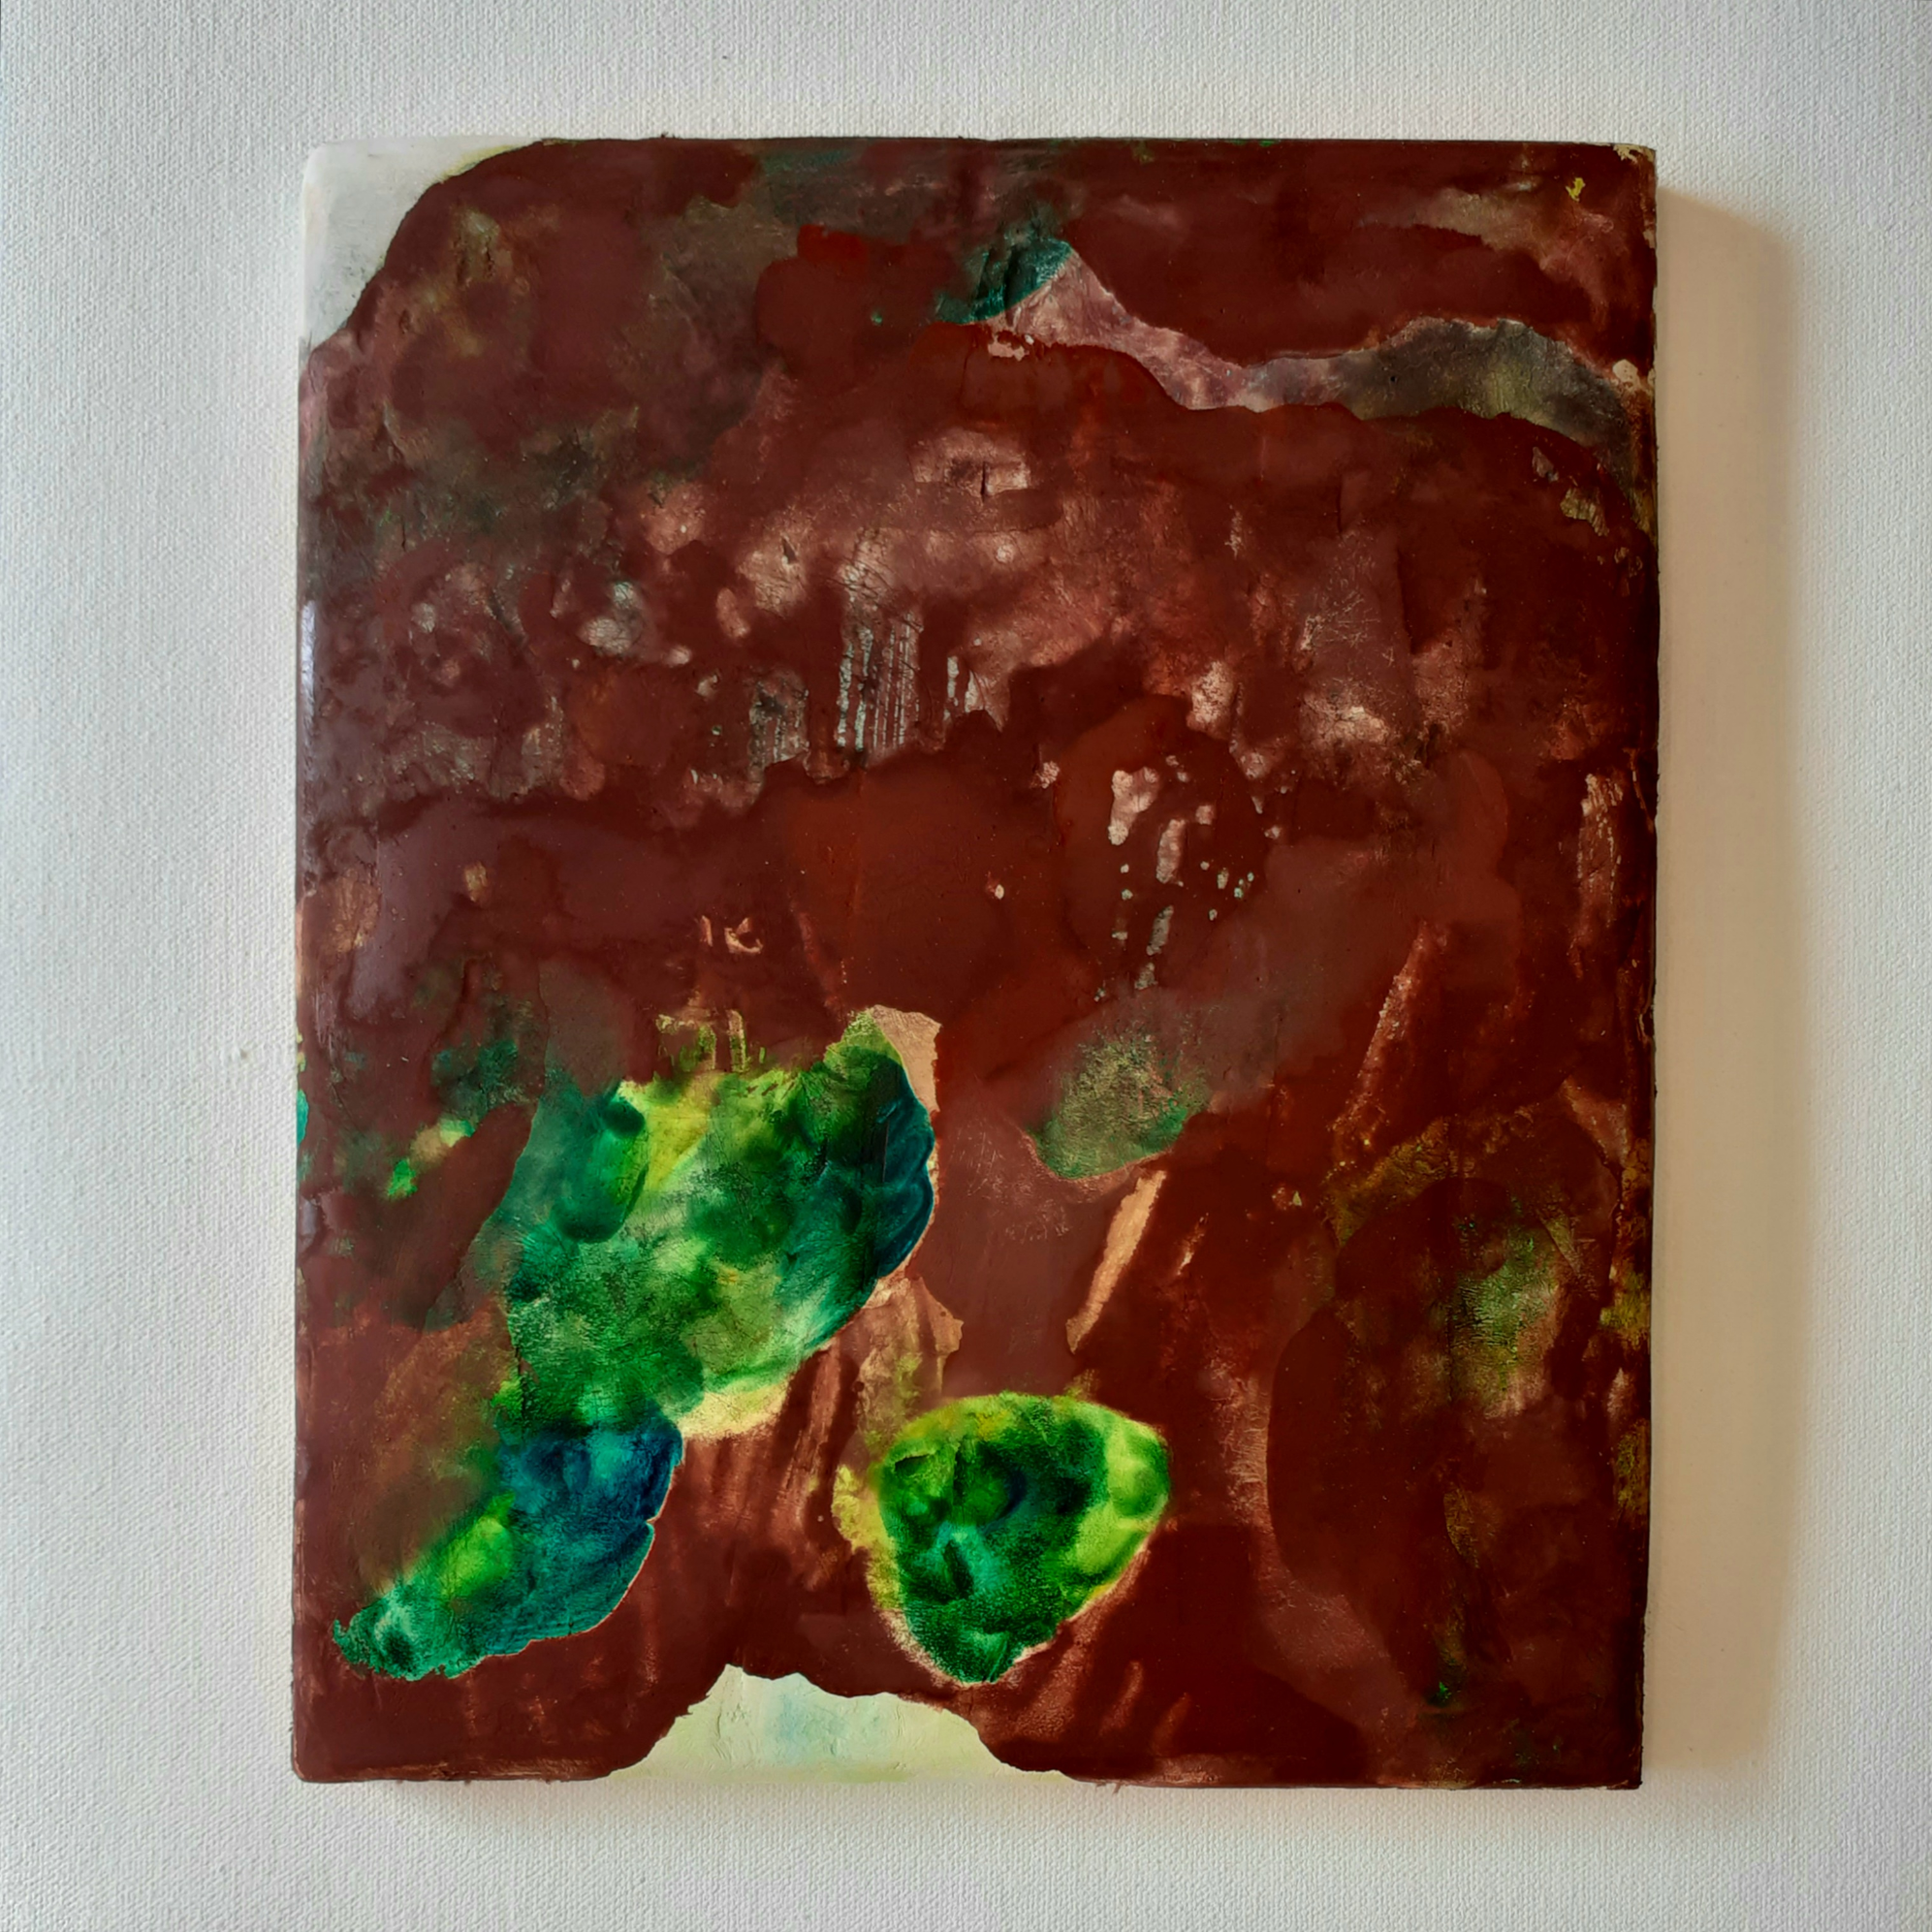 Painting by Marielle Hehir featuring shades of red and green depicting pieces of moss body.